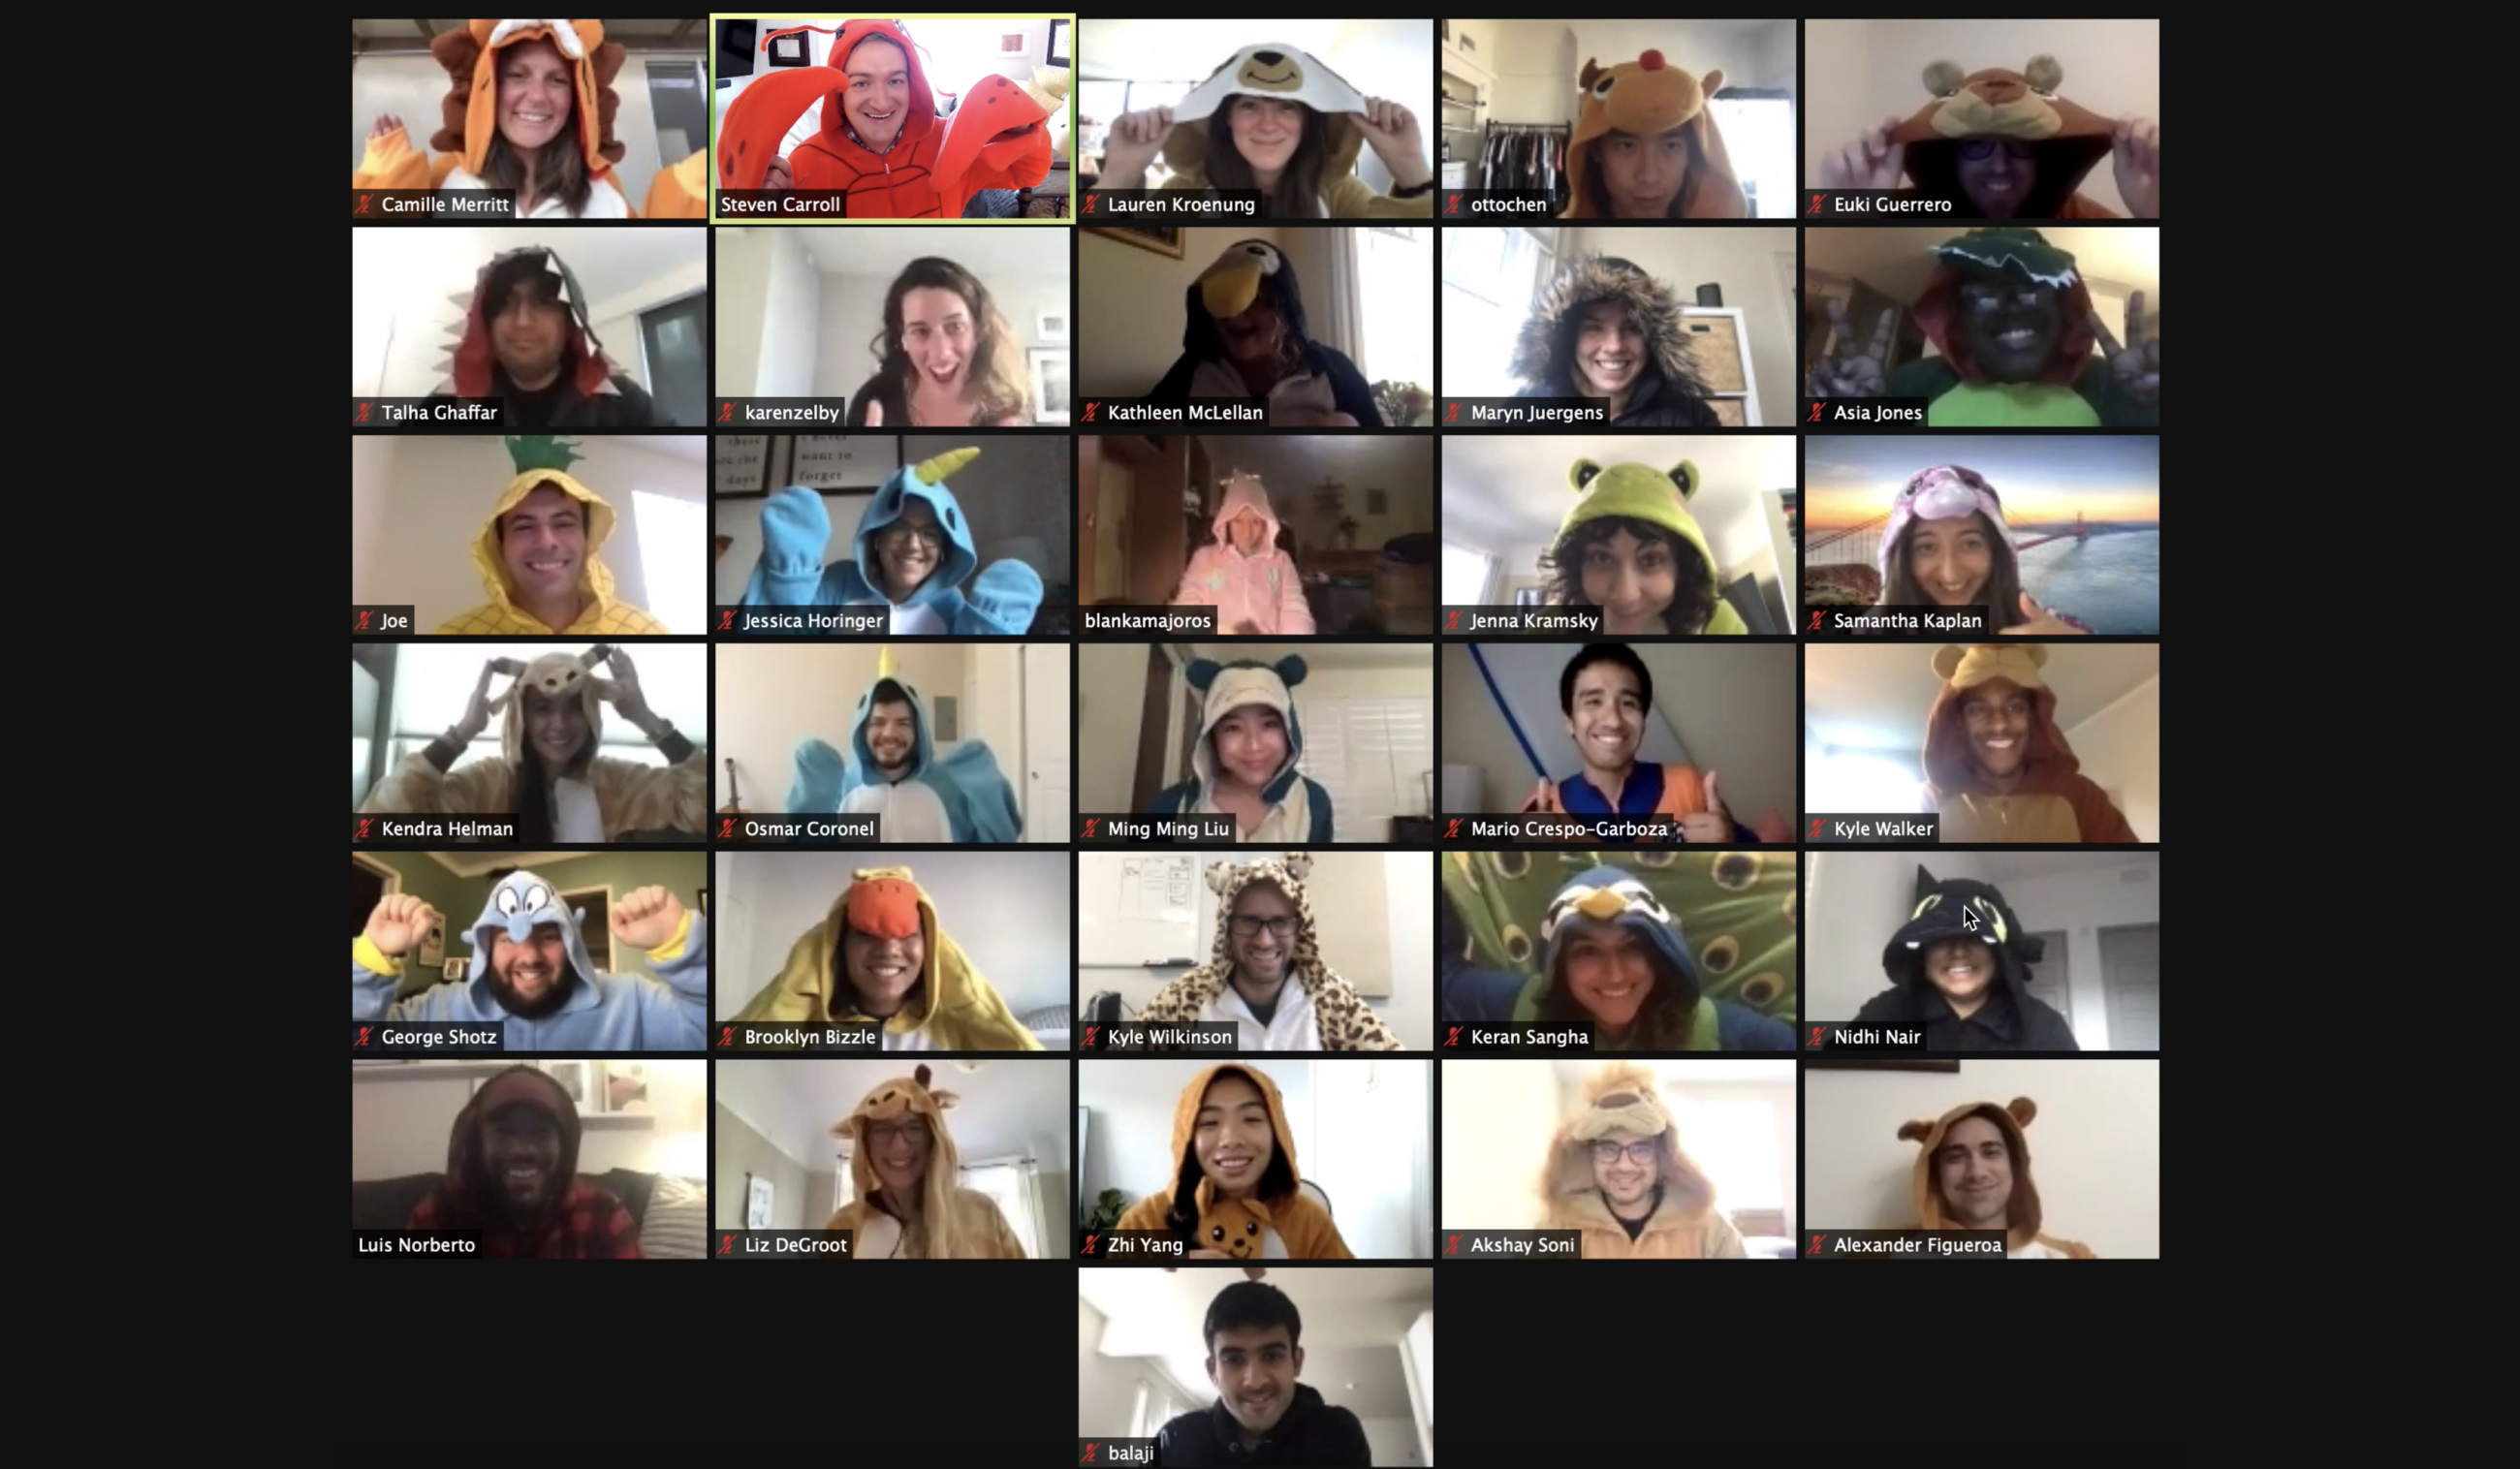 A screenshot of 31 Zoom participants in onesies